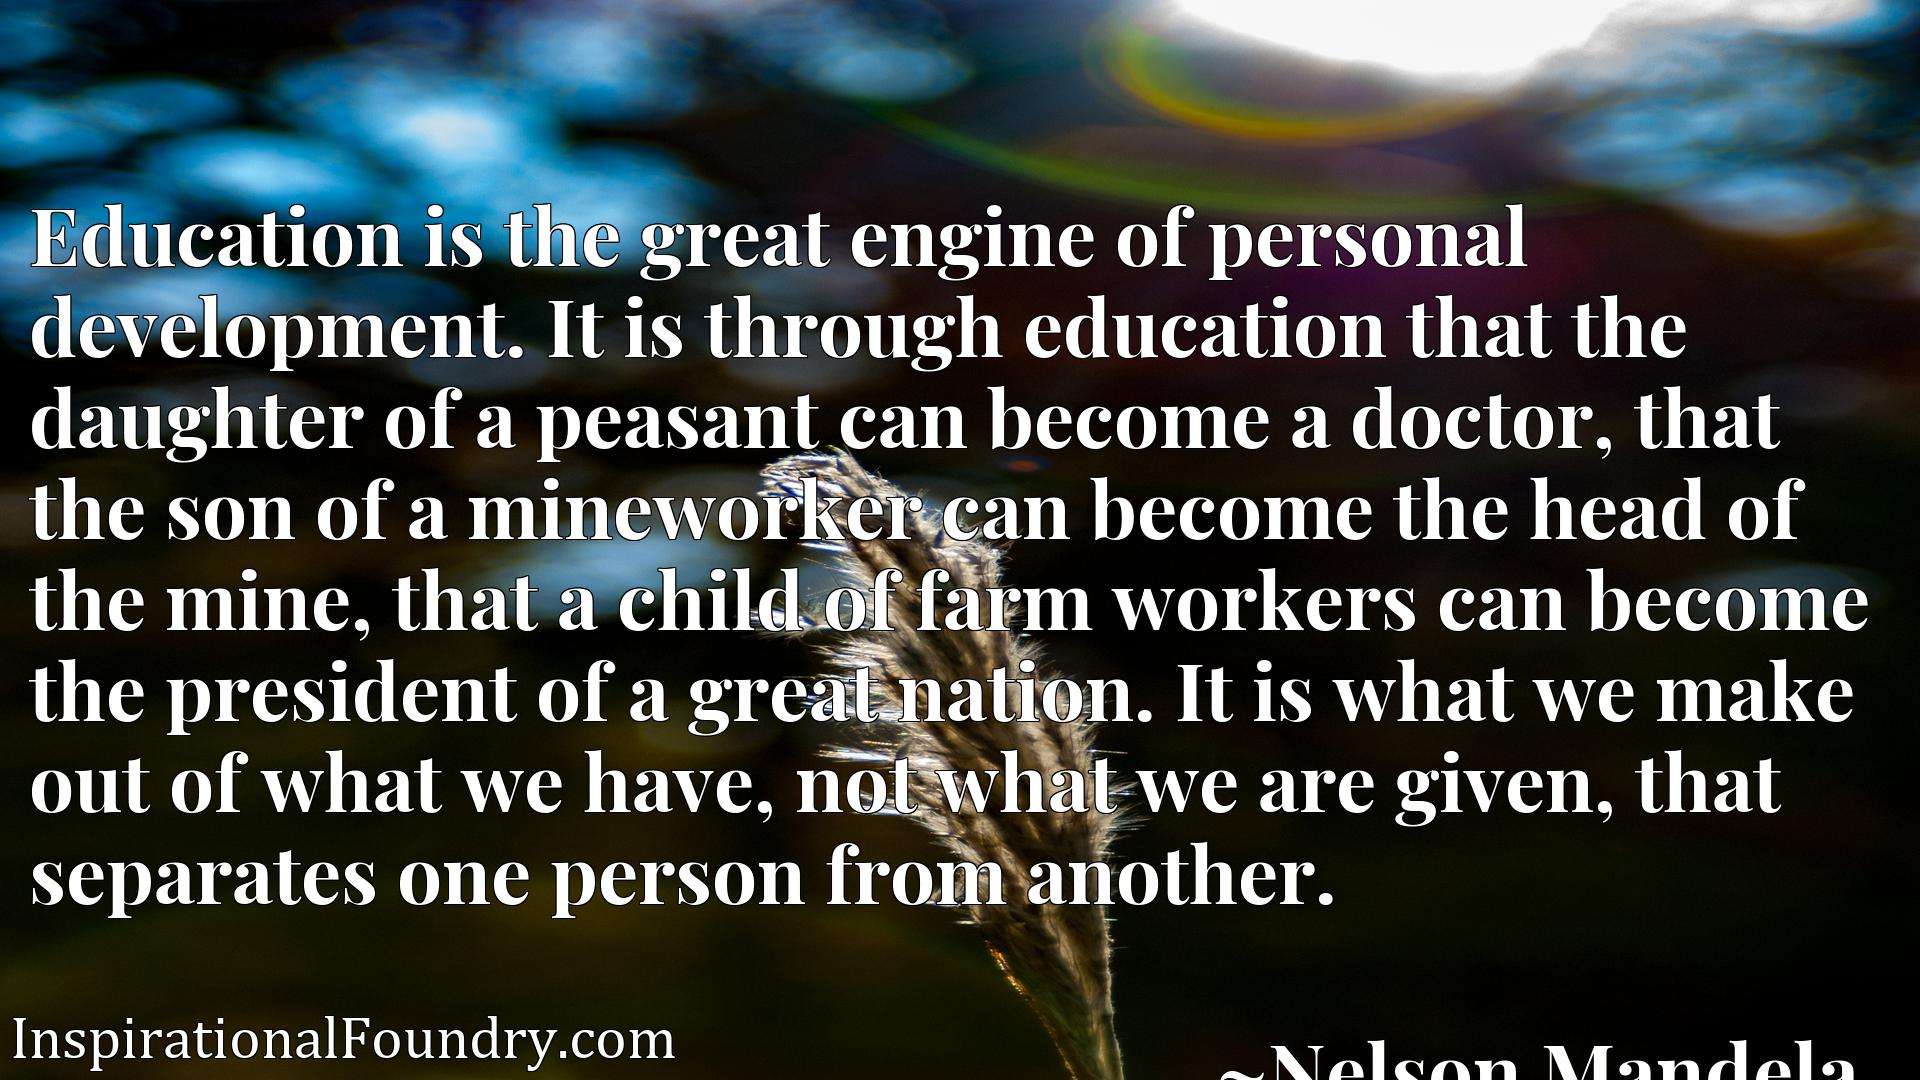 Quote Picture :Education is the great engine of personal development. It is through education that the daughter of a peasant can become a doctor, that the son of a mineworker can become the head of the mine, that a child of farm workers can become the president of a great nation. It is what we make out of what we have, not what we are given, that separates one person from another.